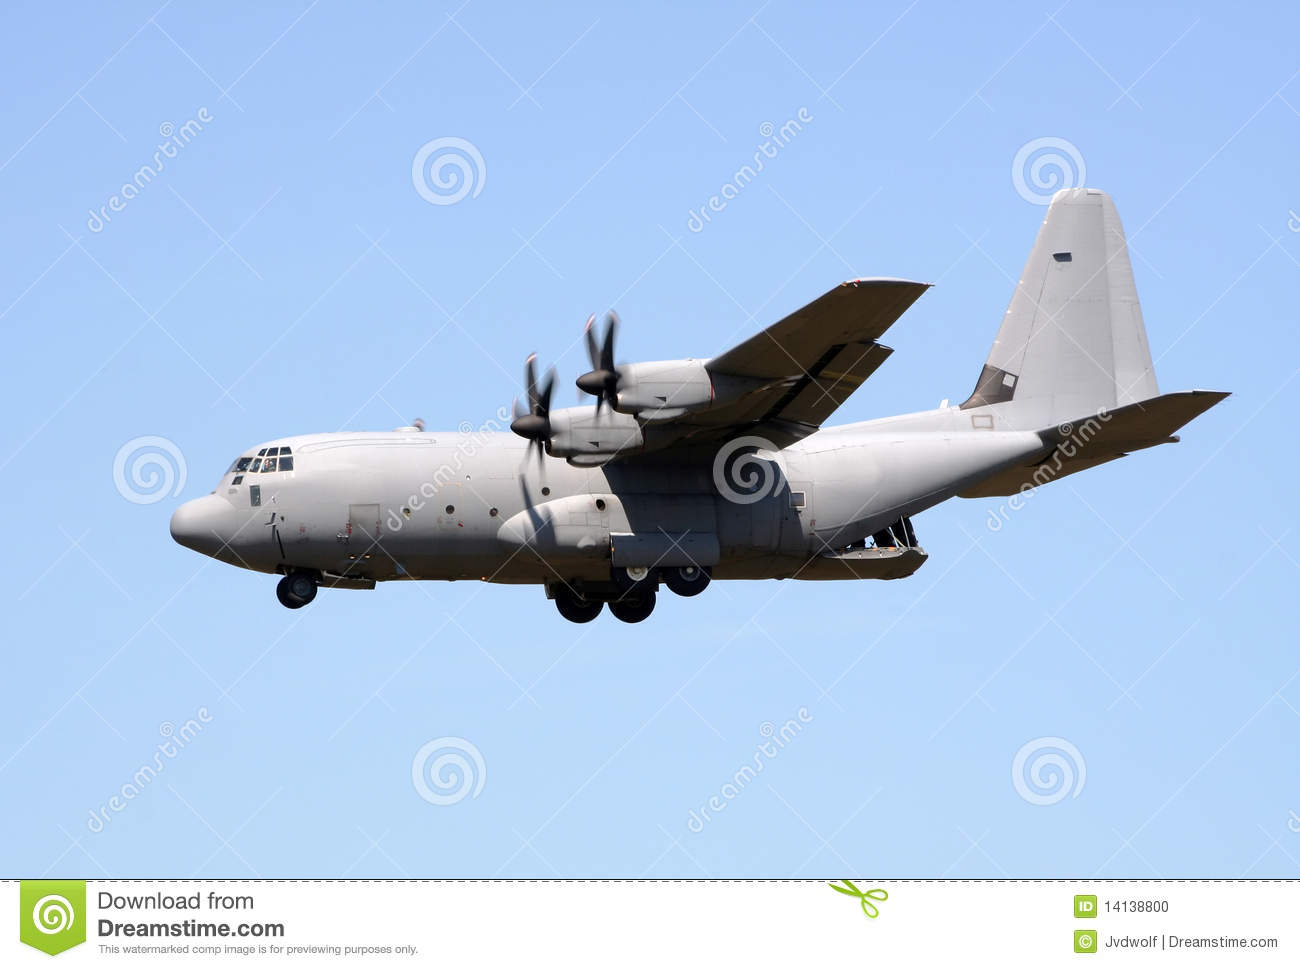 C 130 Military Transport Aircraft Lockheed C-130 Hercule...